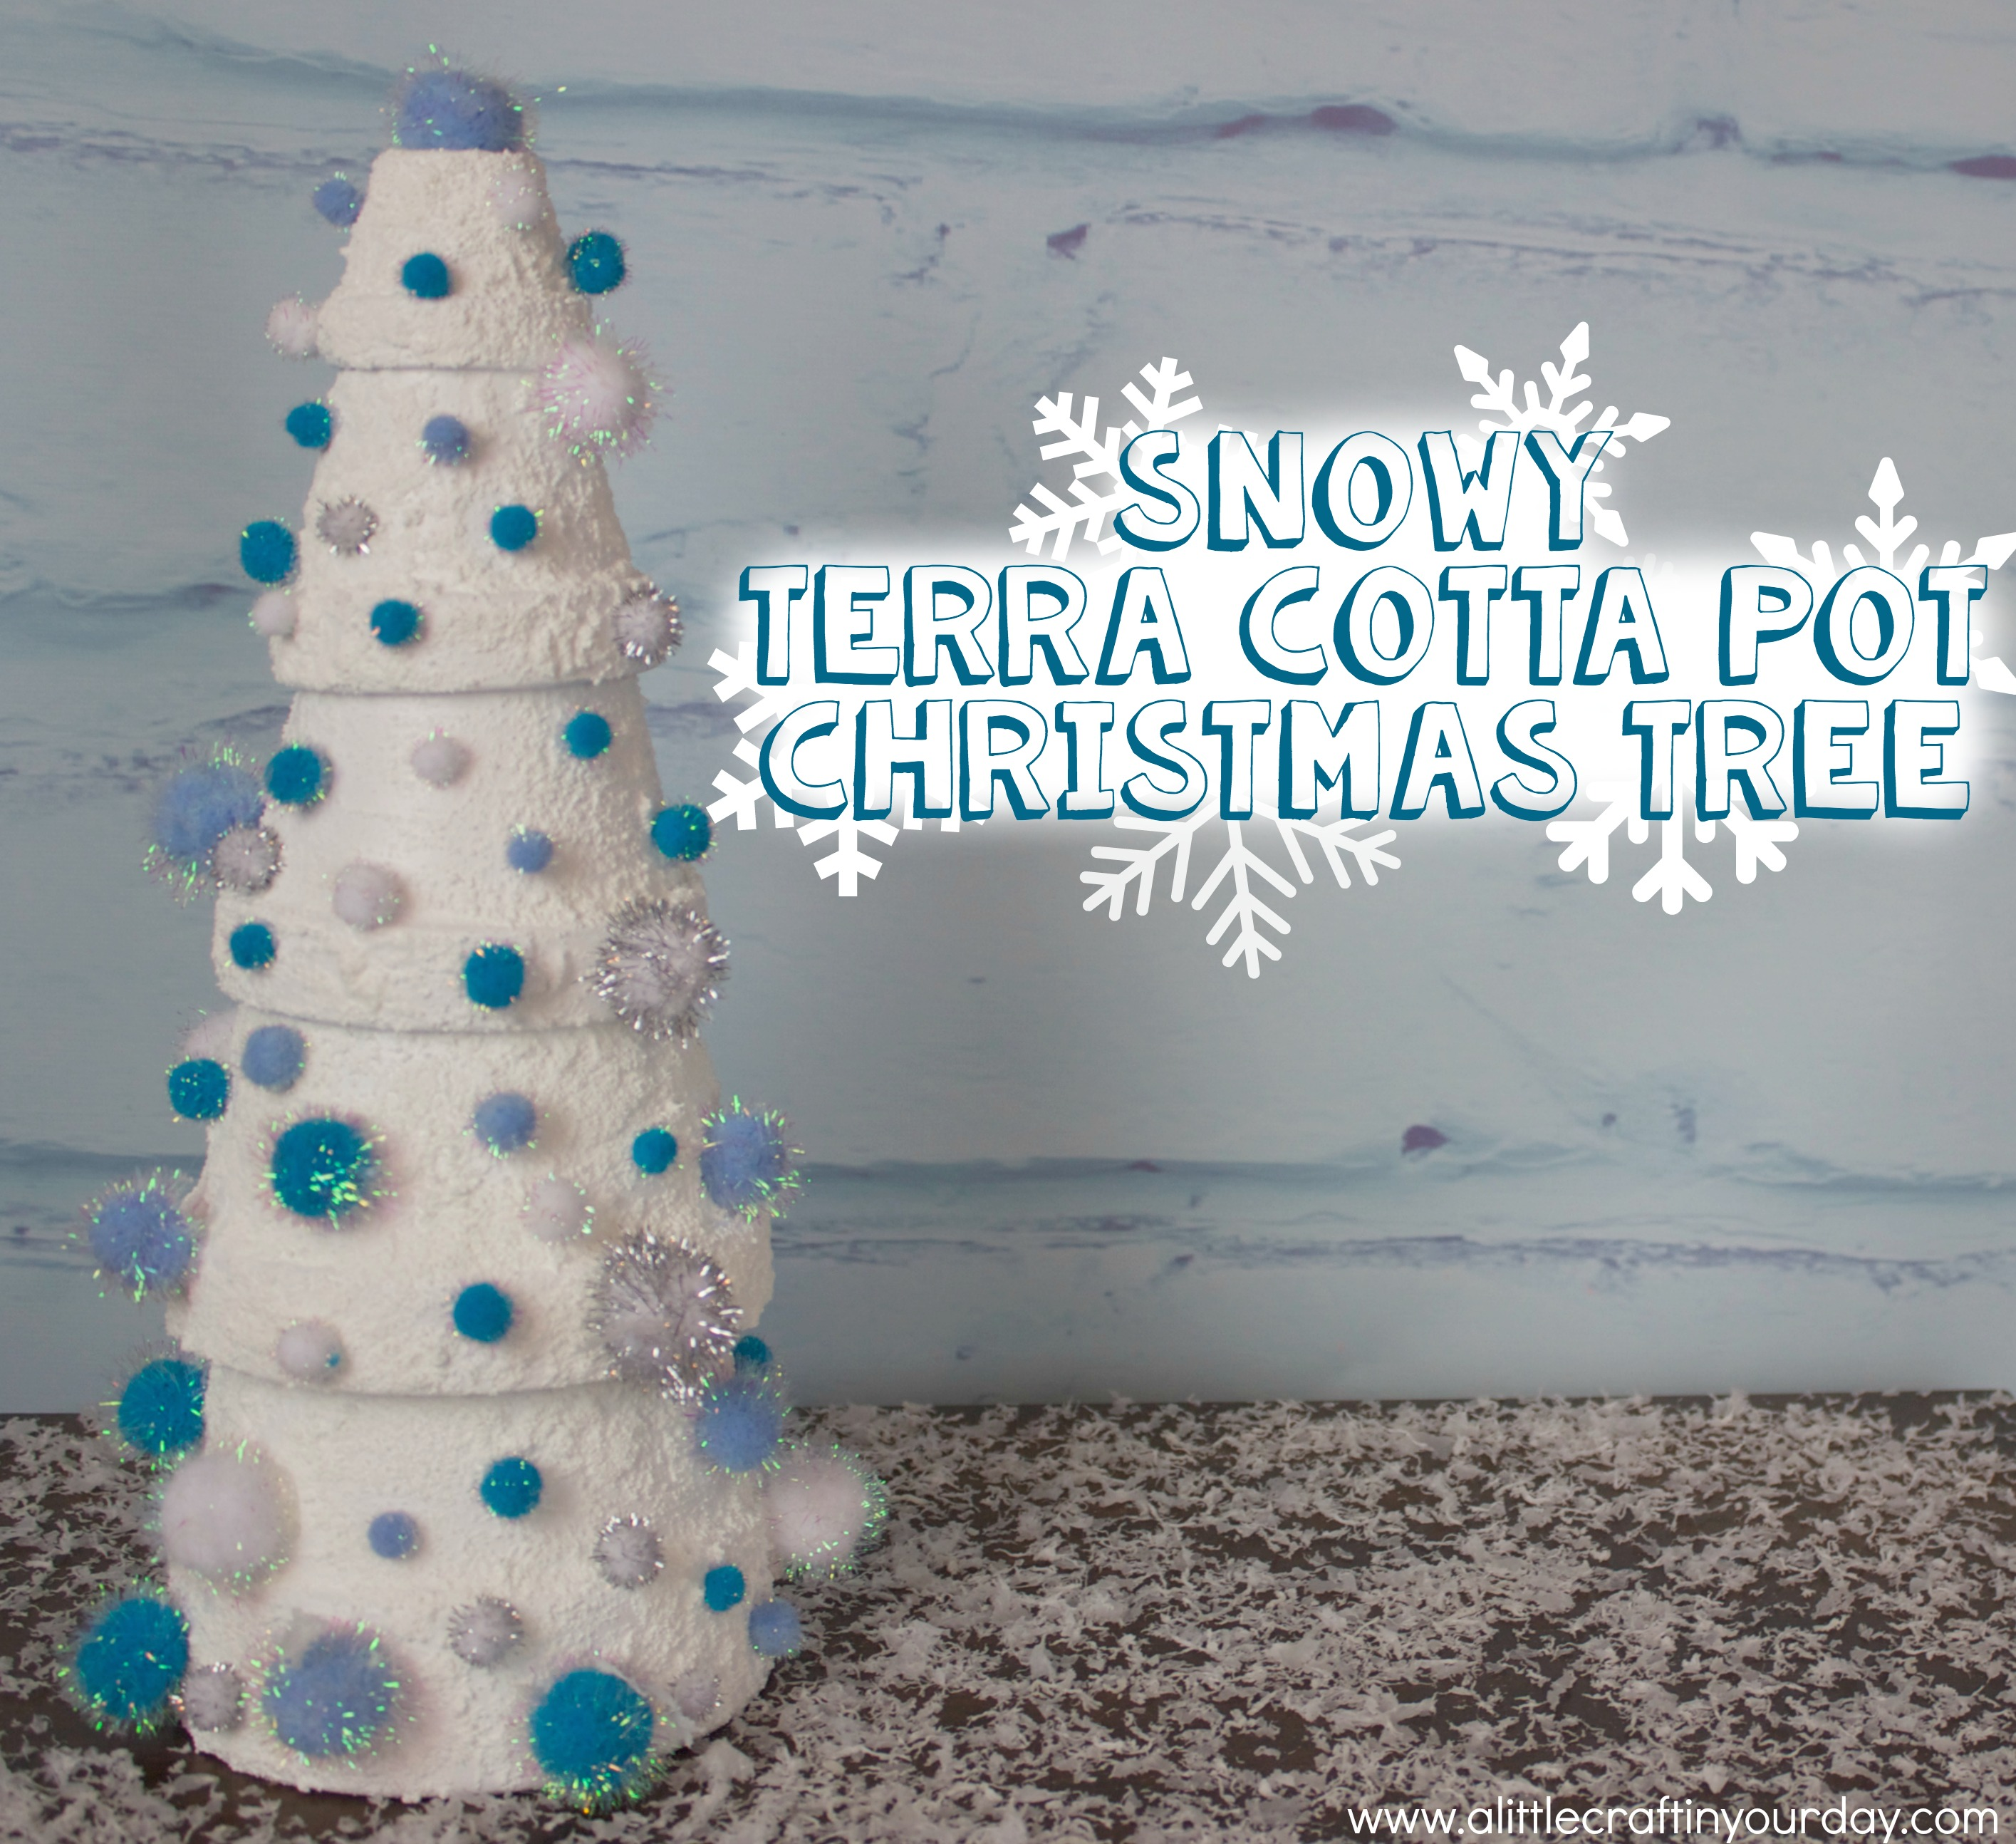 Snowy Terra Cotta Pot Christmas Tree - A Little Craft In Your Day